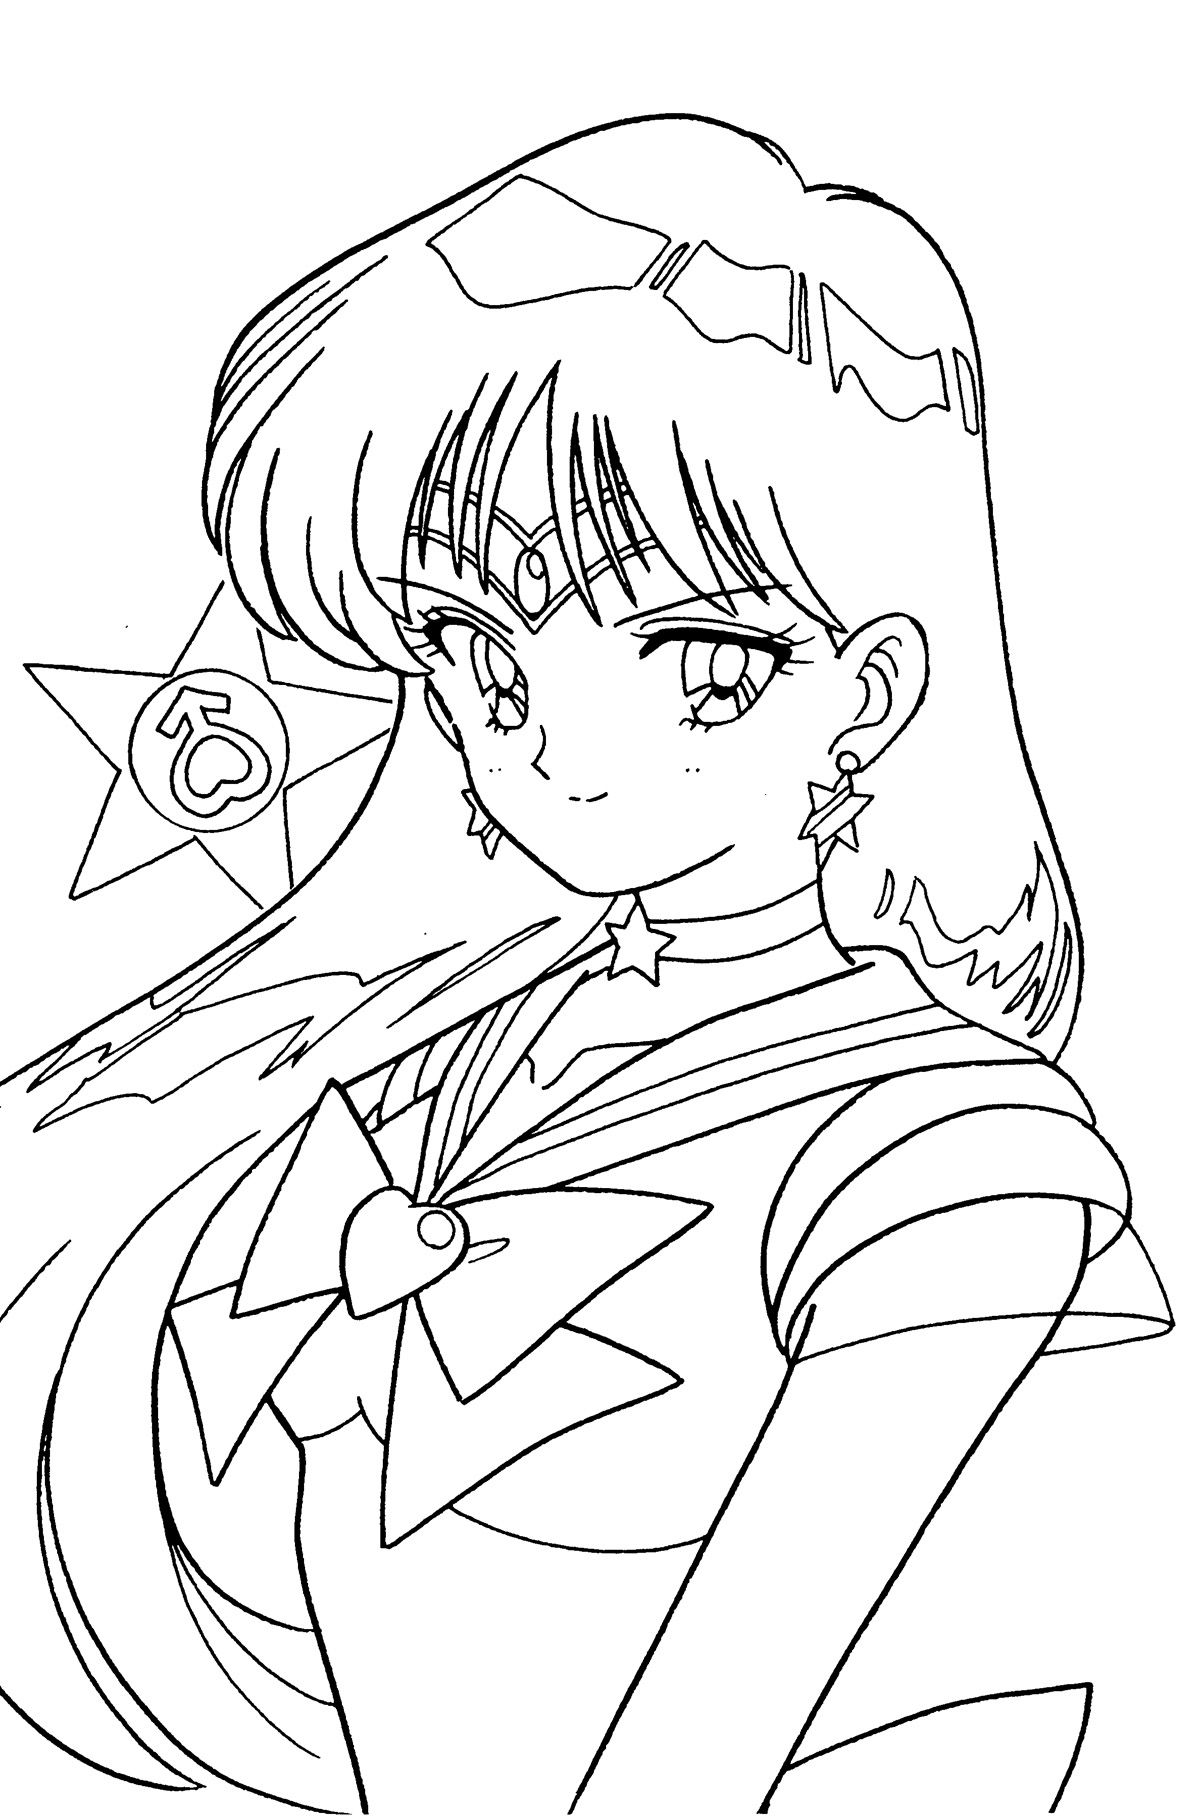 Mars011 Jpg 1200 1818 Sailor Moon Coloring Pages Sailor Moon